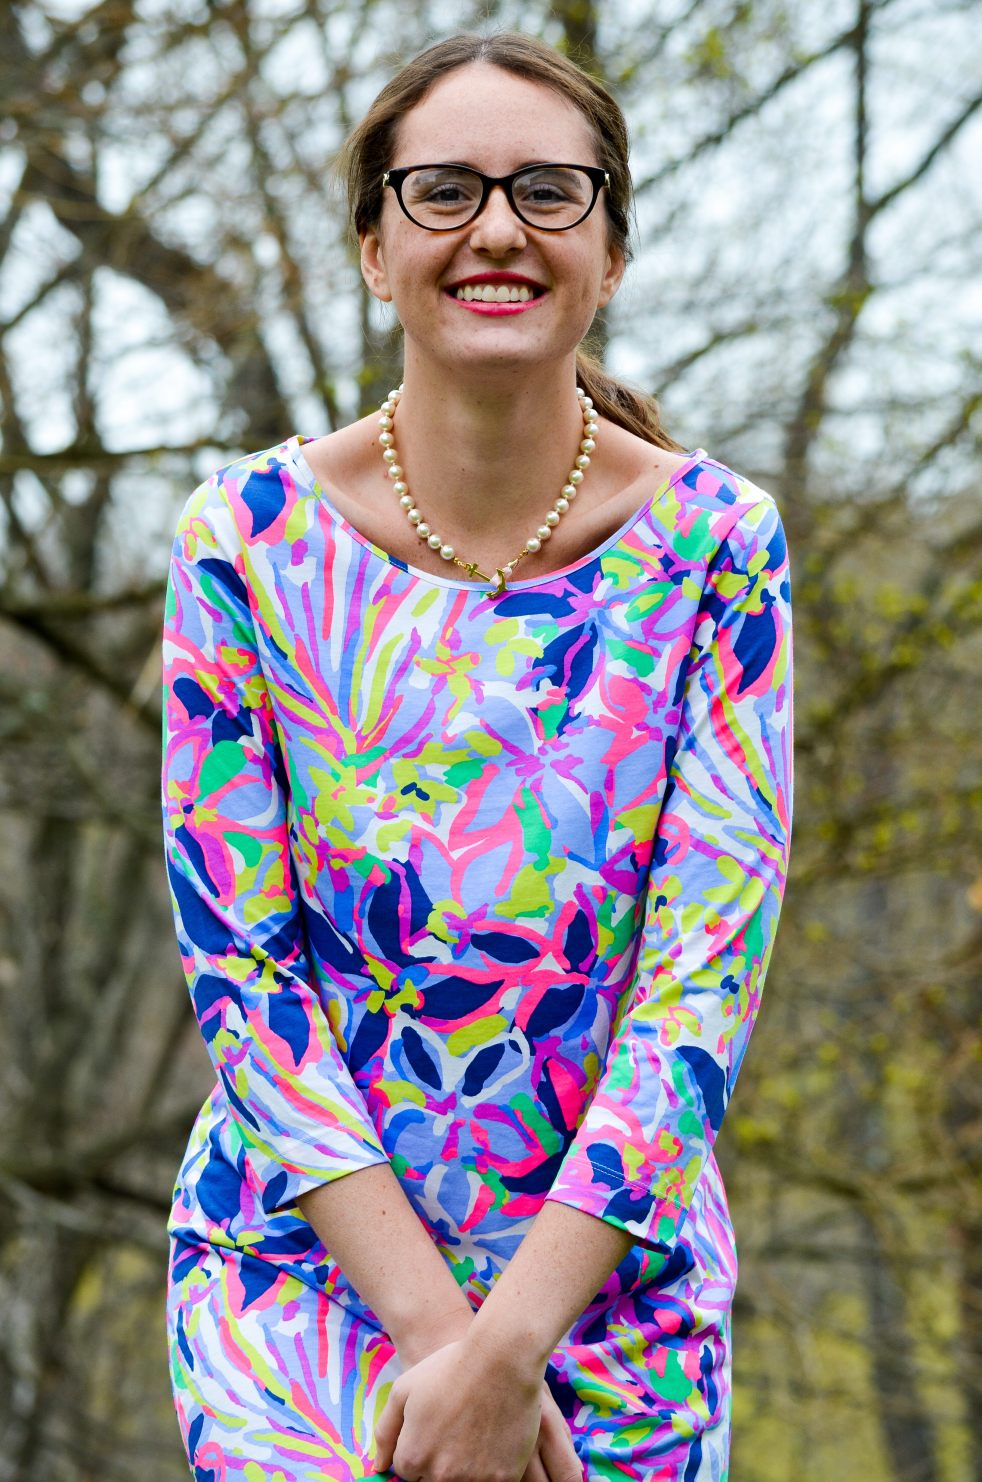 momentsofamermaid moments of a mermaid blog fashion blogger preppy ootd outfit of the day lilly pulitzer easter 2017 what to wear dress